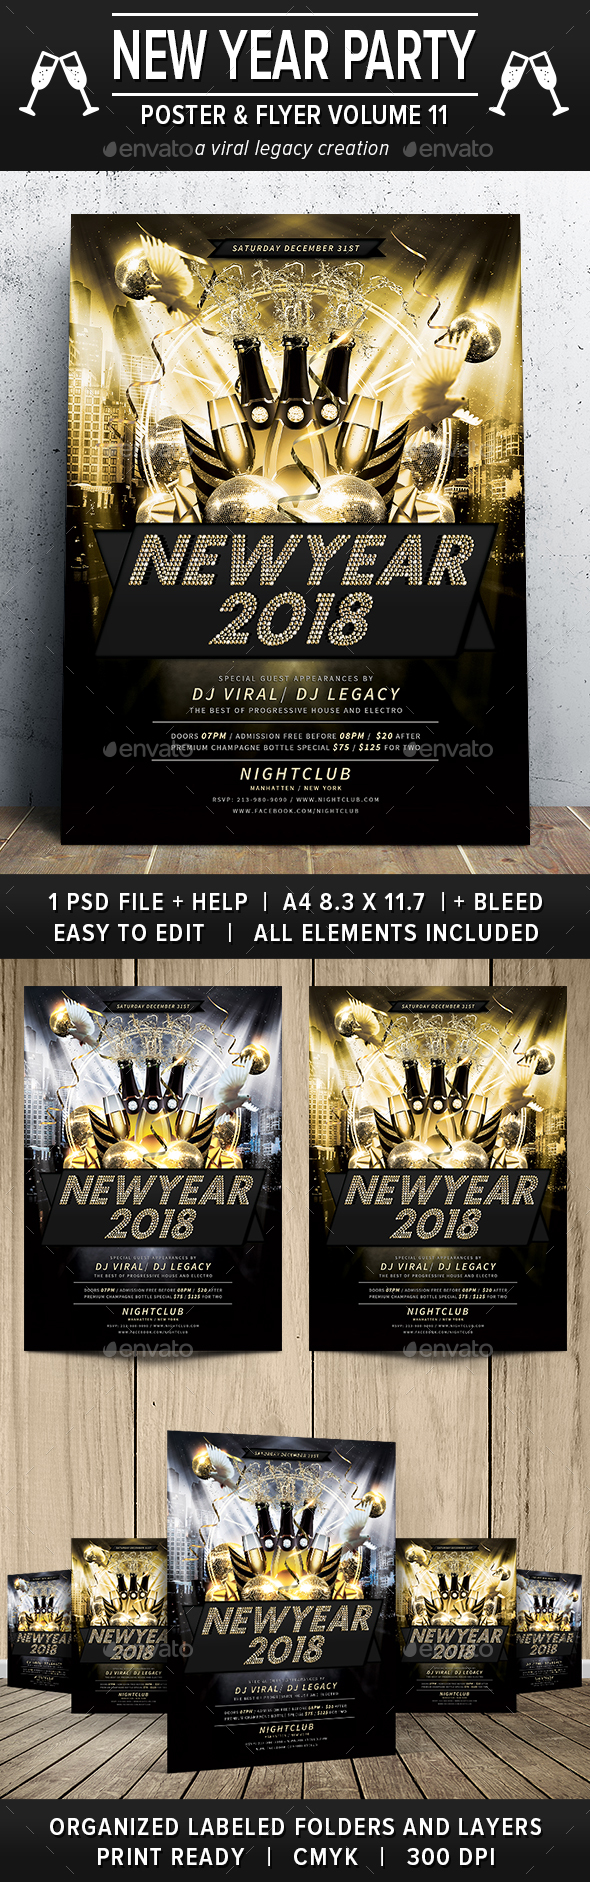 New Year Party Poster / Flyer V11 - Flyers Print Templates